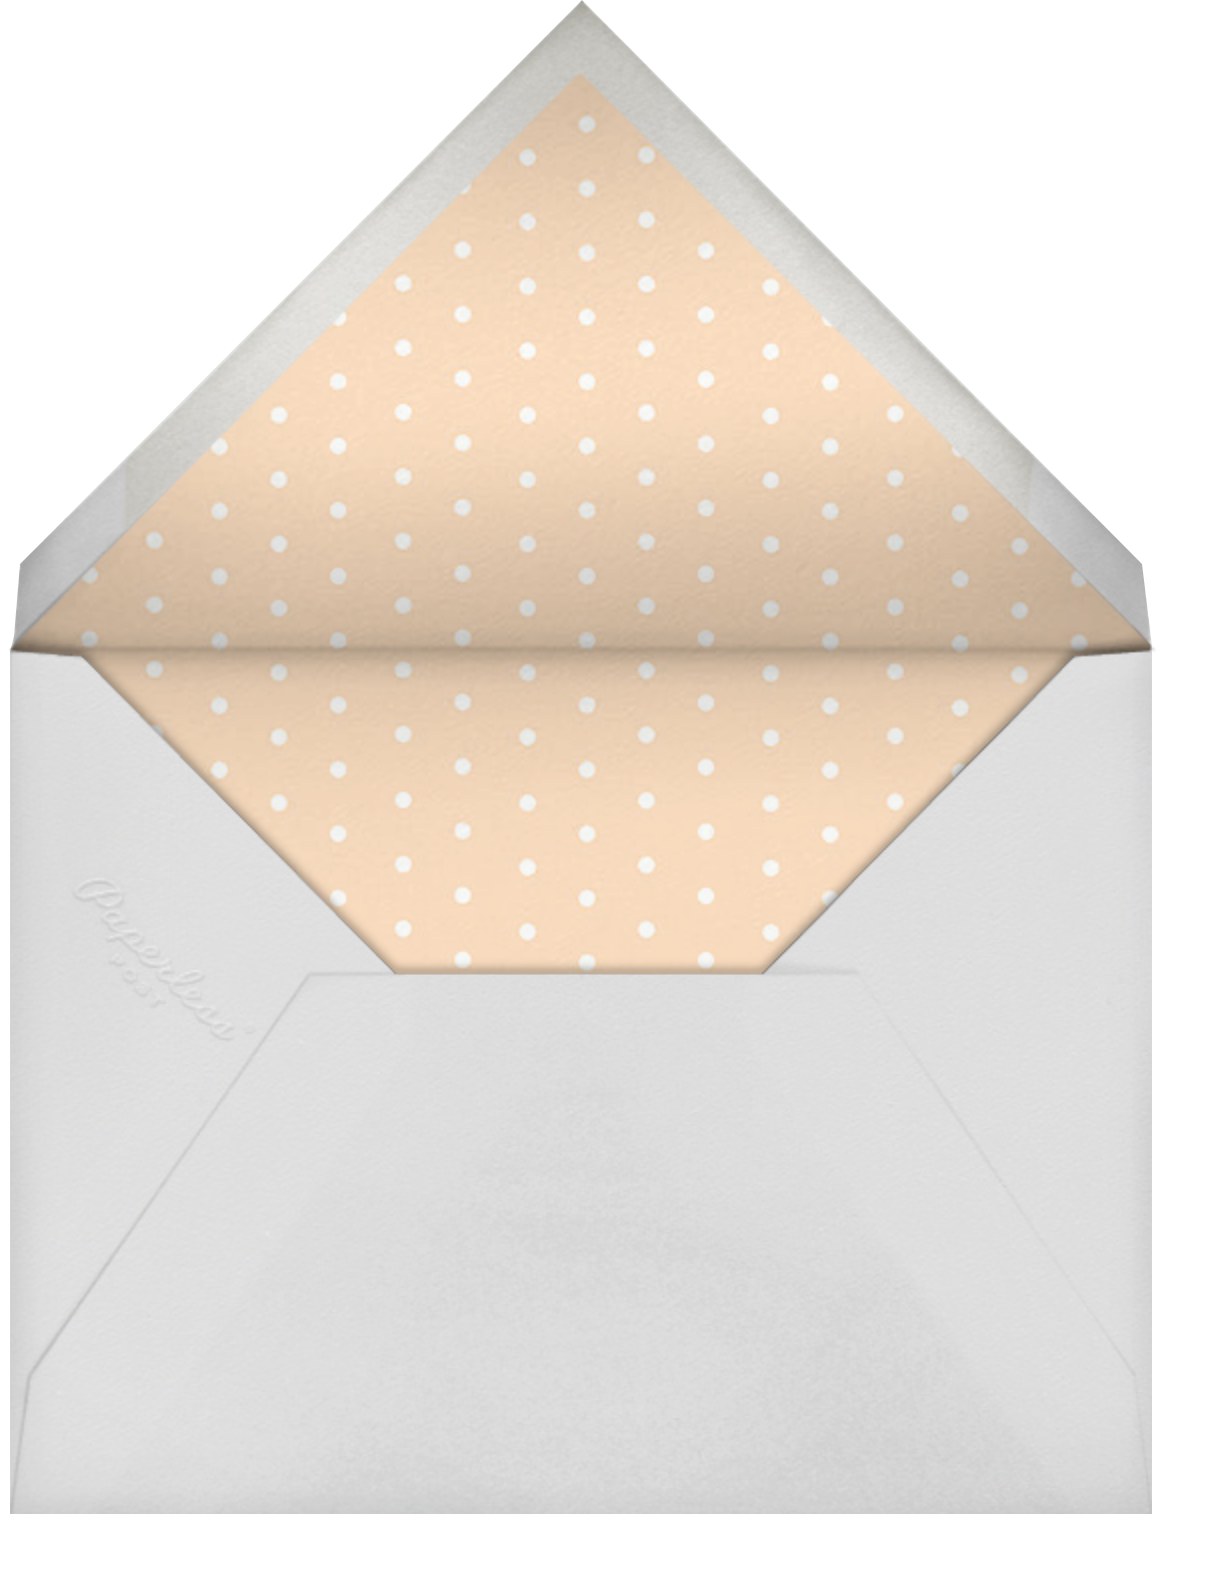 Bunny, Bear, and Baby - Peach - Rifle Paper Co. - Woodland baby shower invitations - envelope back